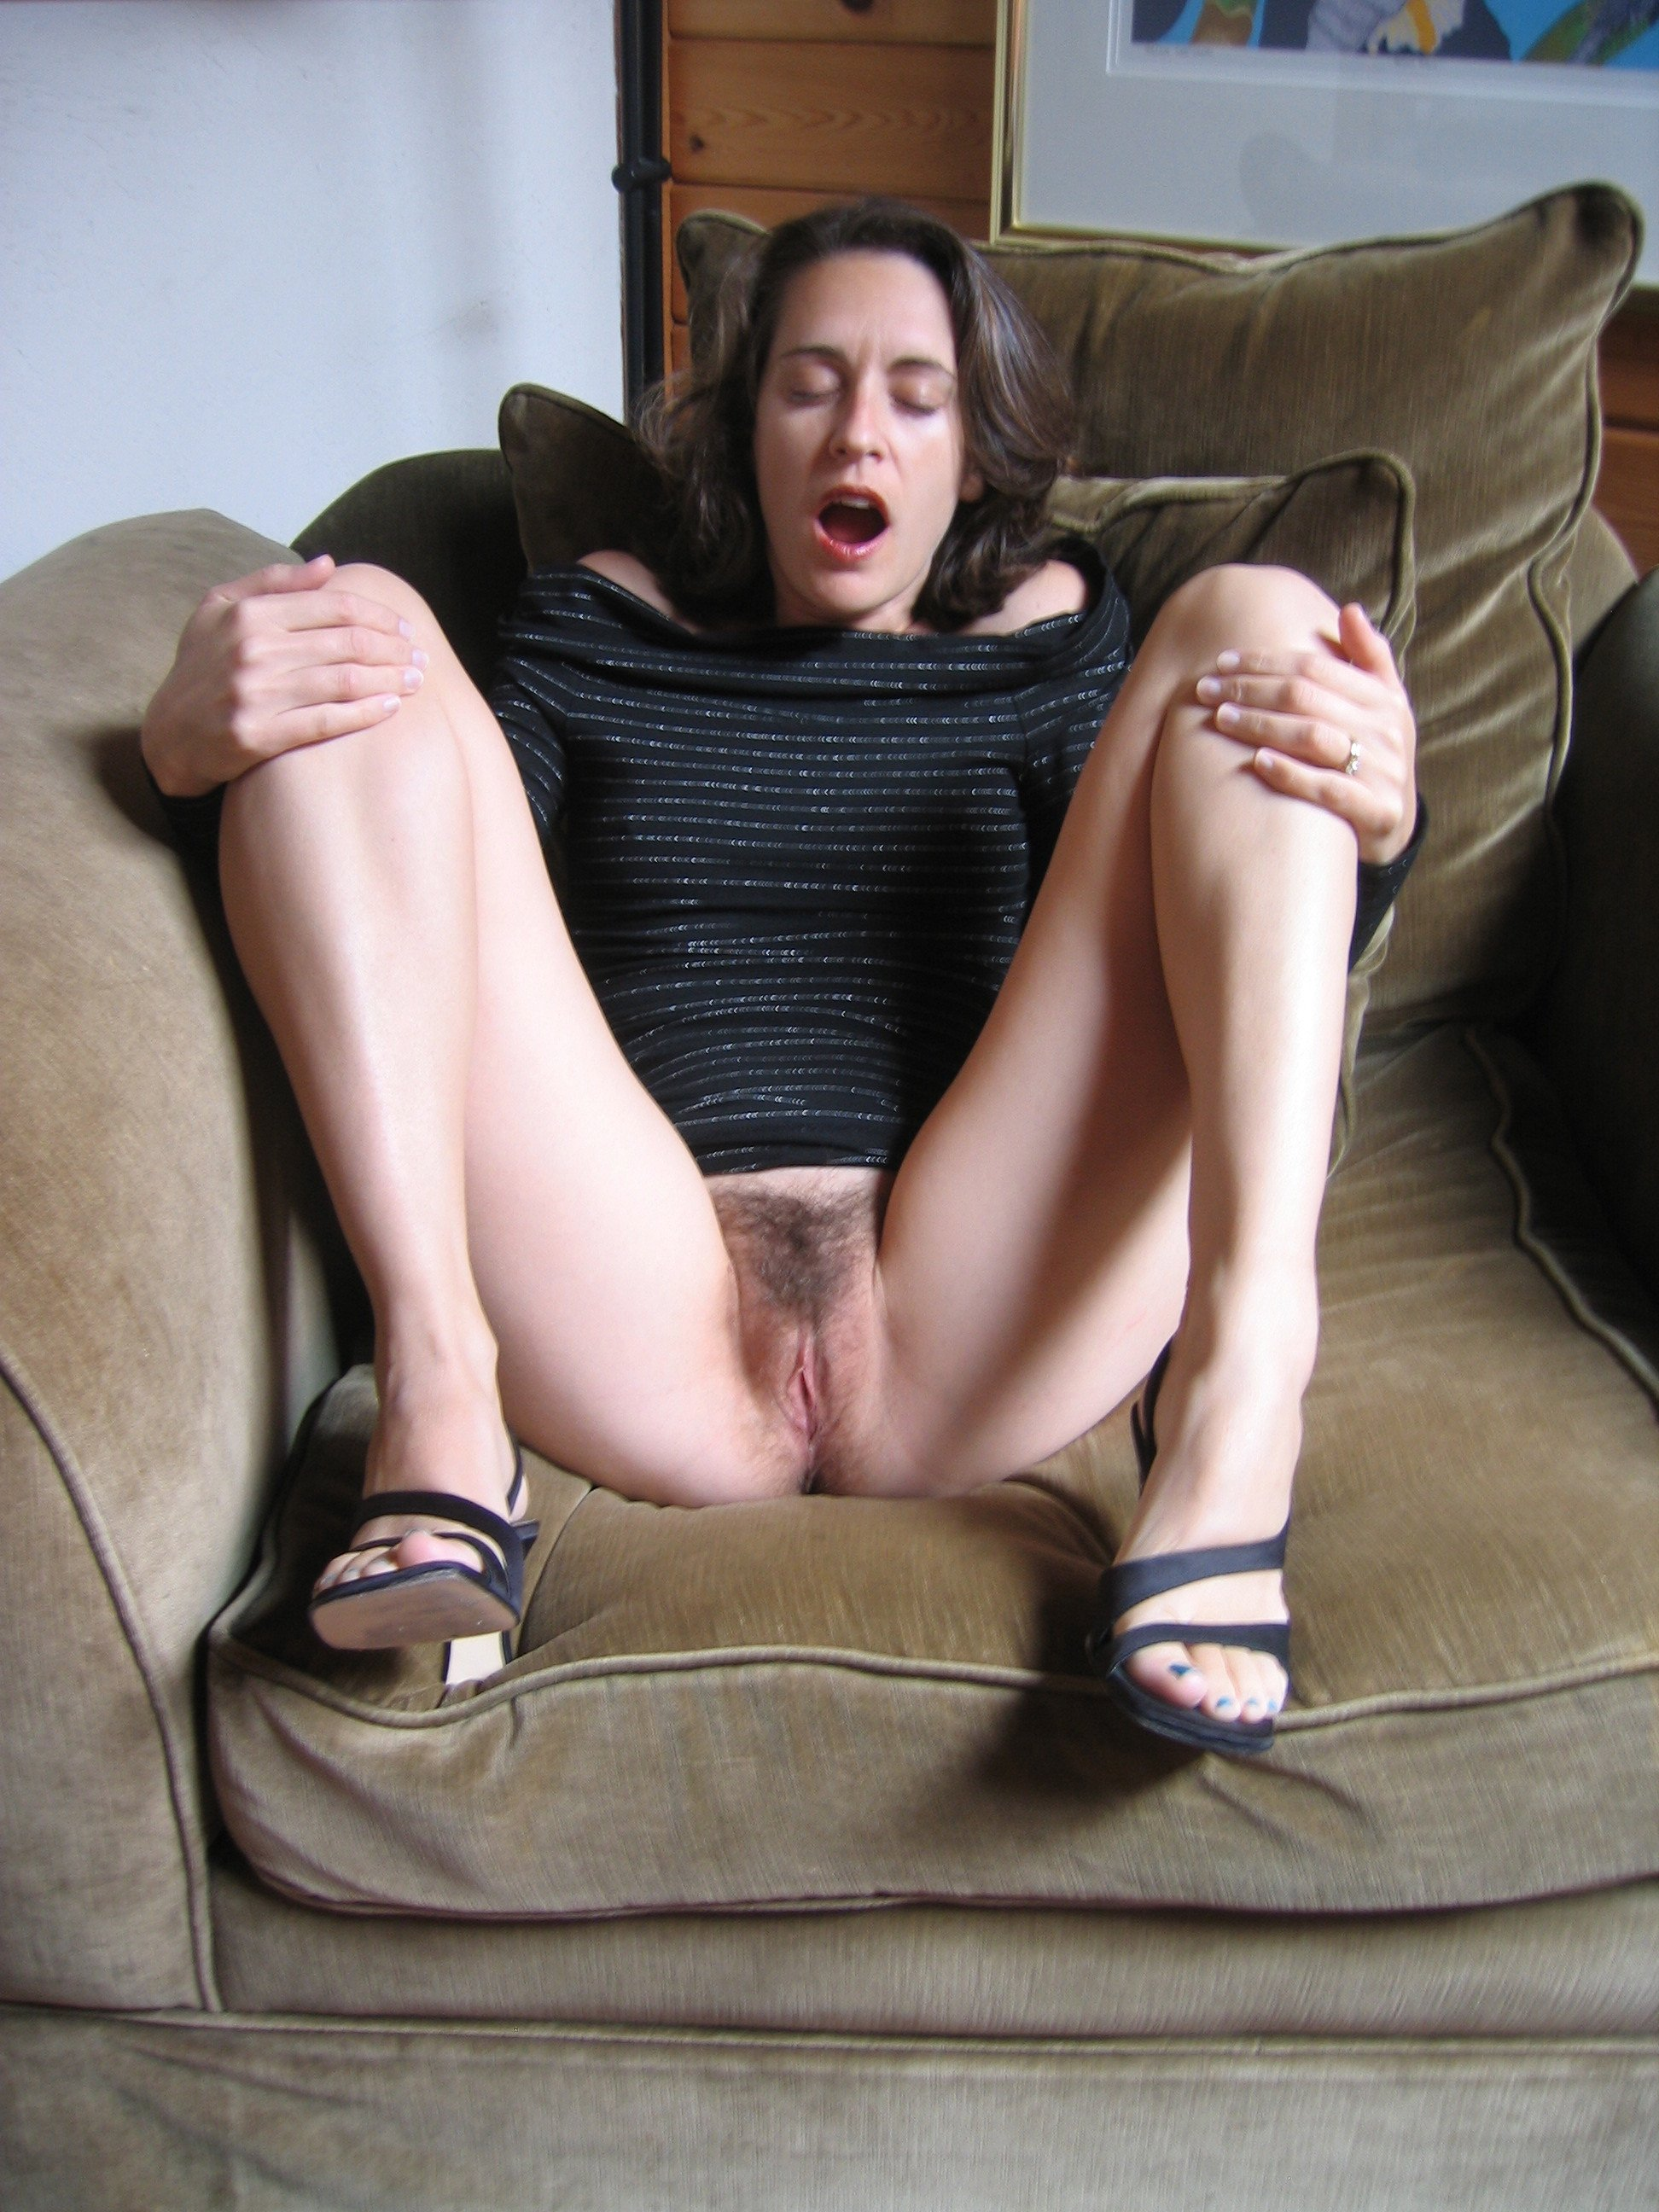 amateur wifes photos mature busty topless